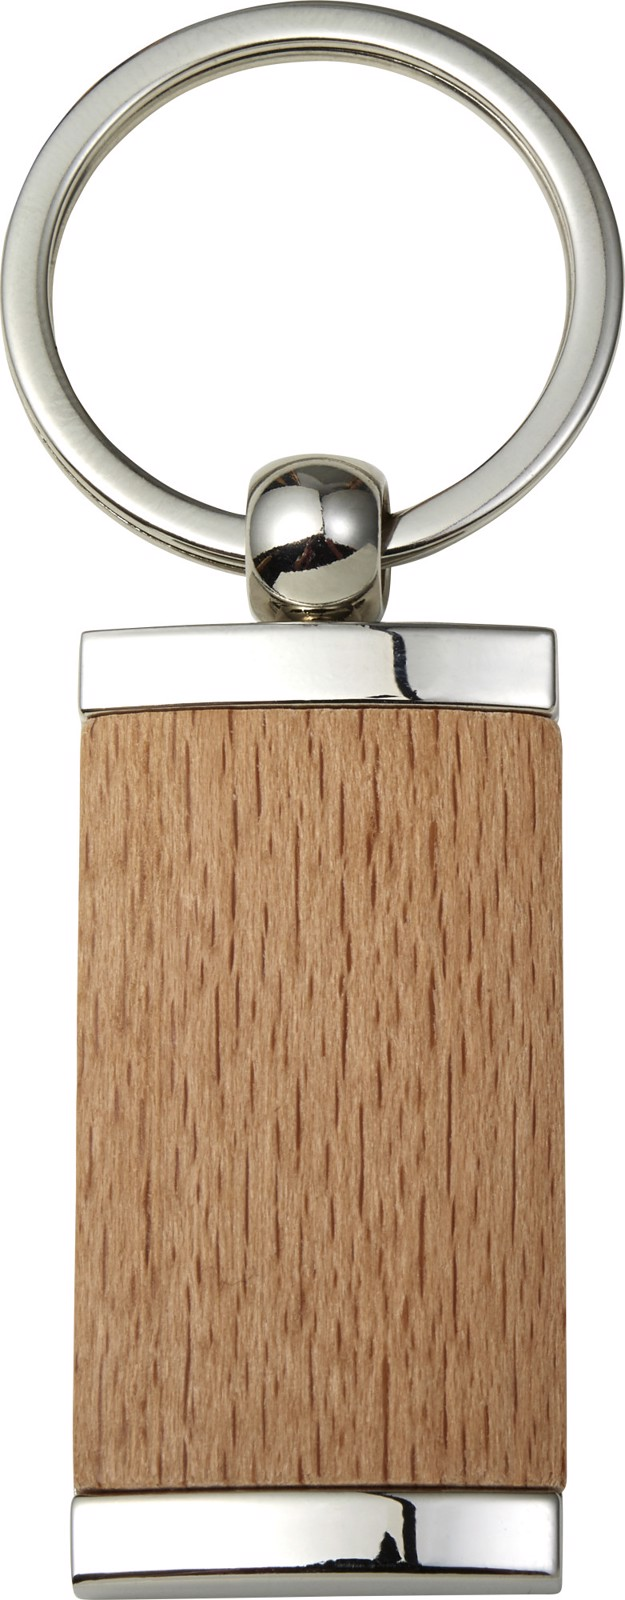 Metal and wooden key holder